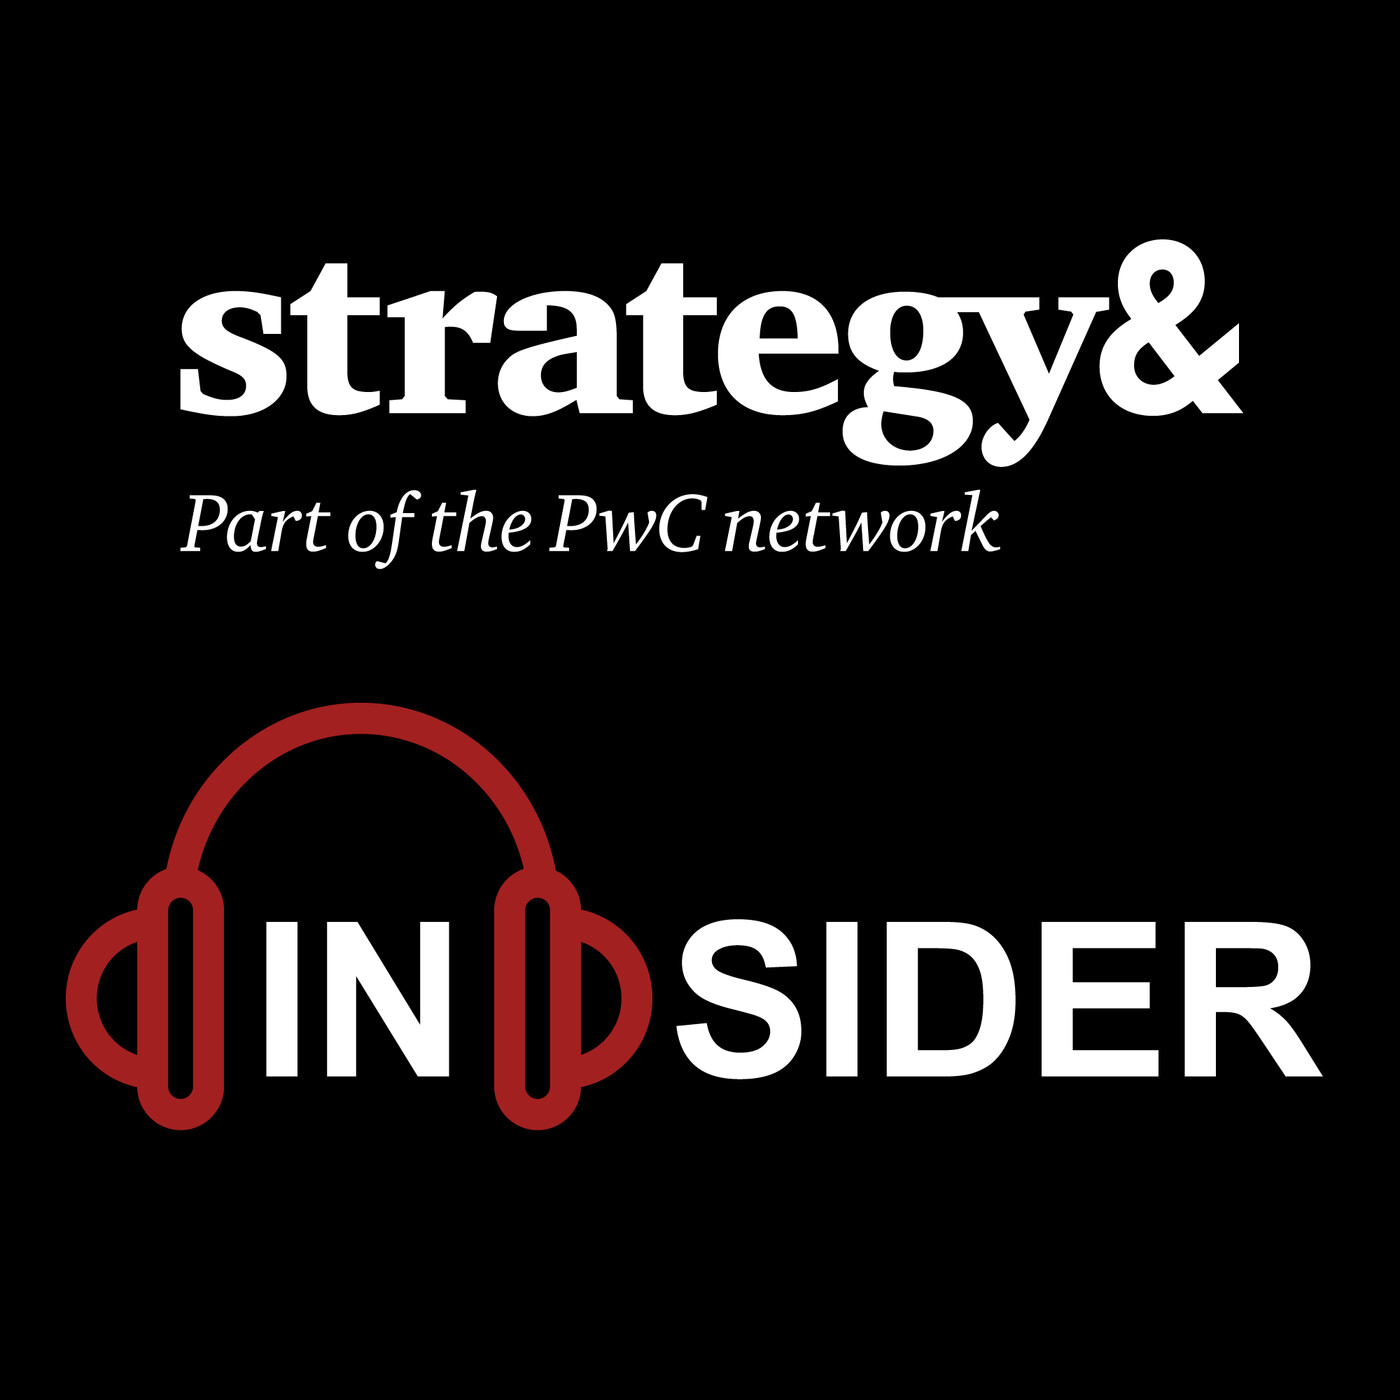 Strategy& Insider Episode 11 – Fostering digitization in healthcare with an ecosystem approach